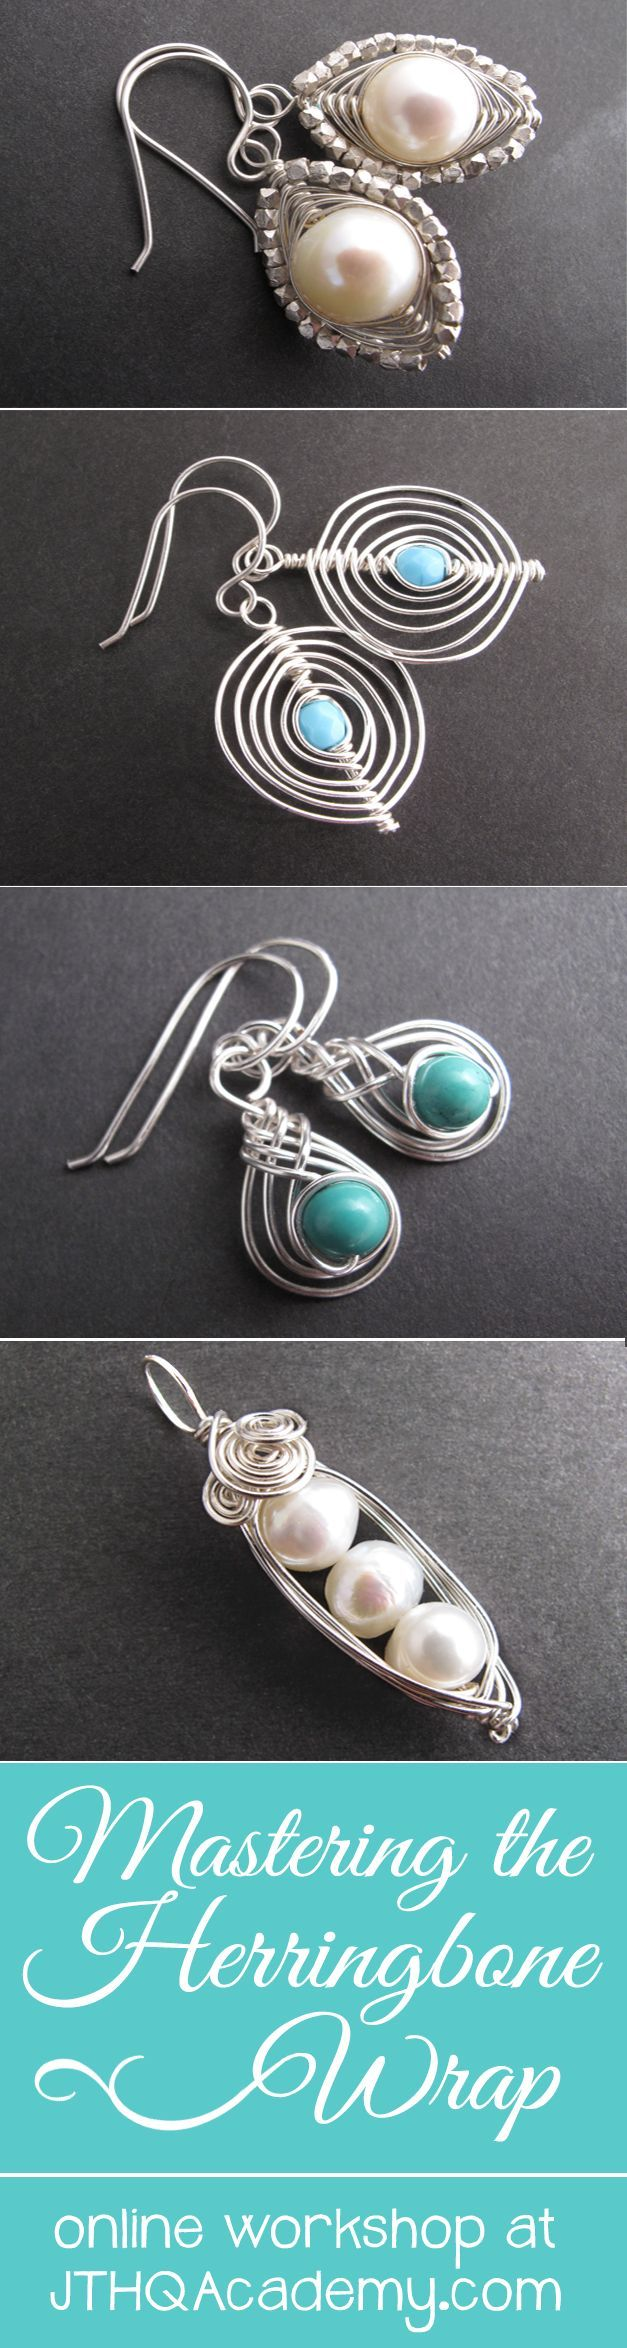 Learn all these herringbone wire jewelry designs and MORE as part of